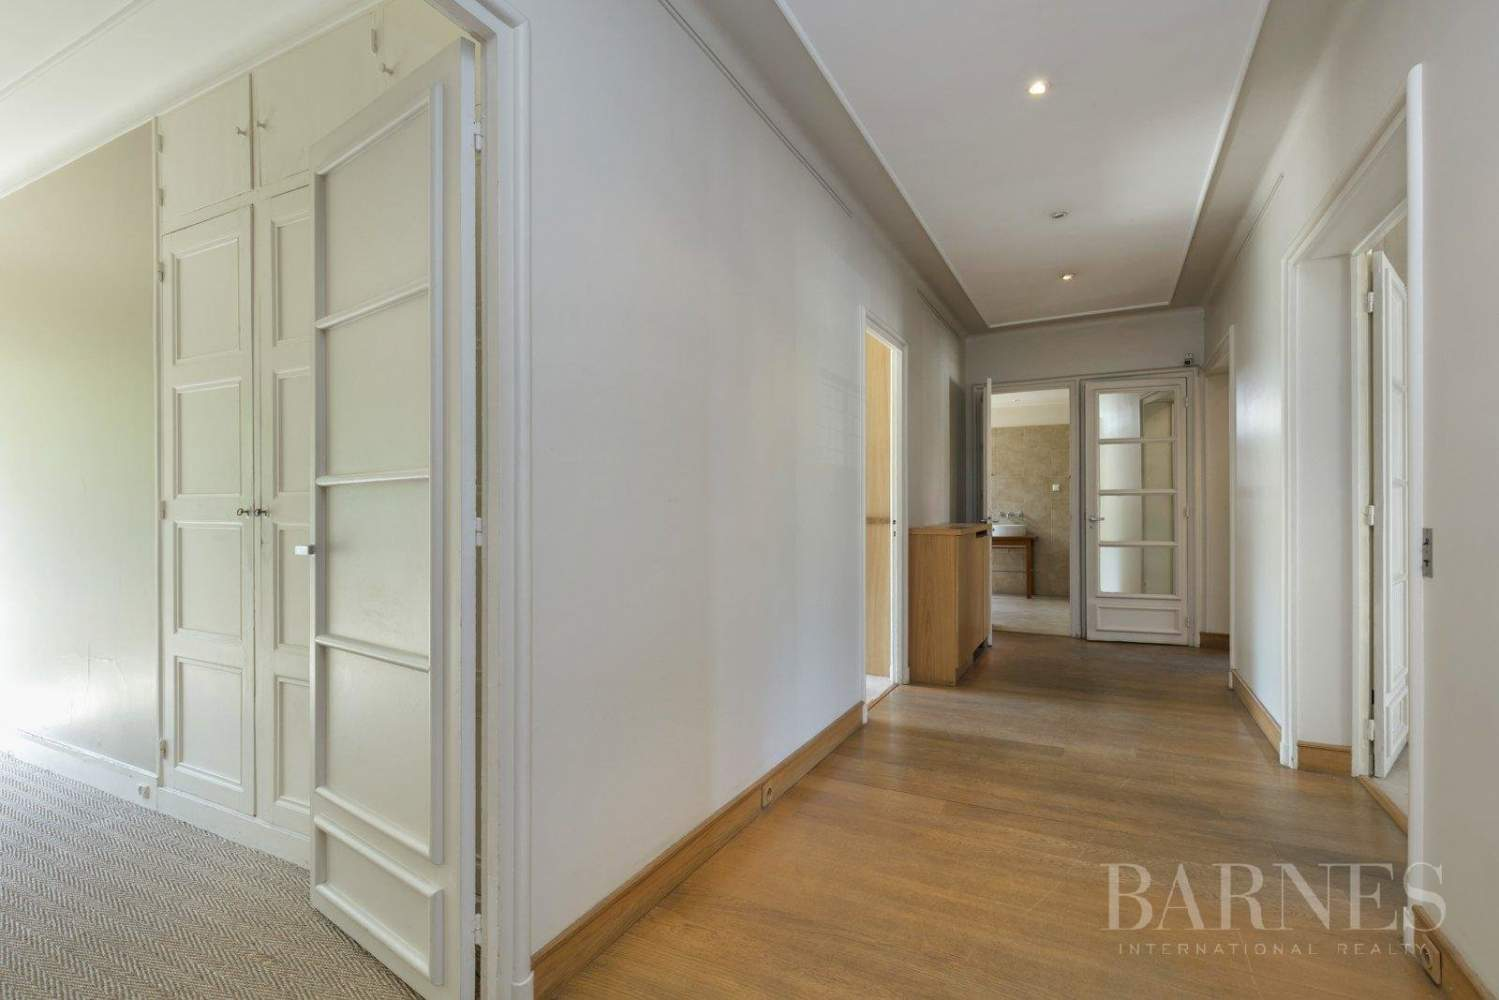 3-BEDROOM APARTMENT - CLEAR VIEWS - BALCONIES - NEUILLY / CHÂTEAU - NORTIER picture 1